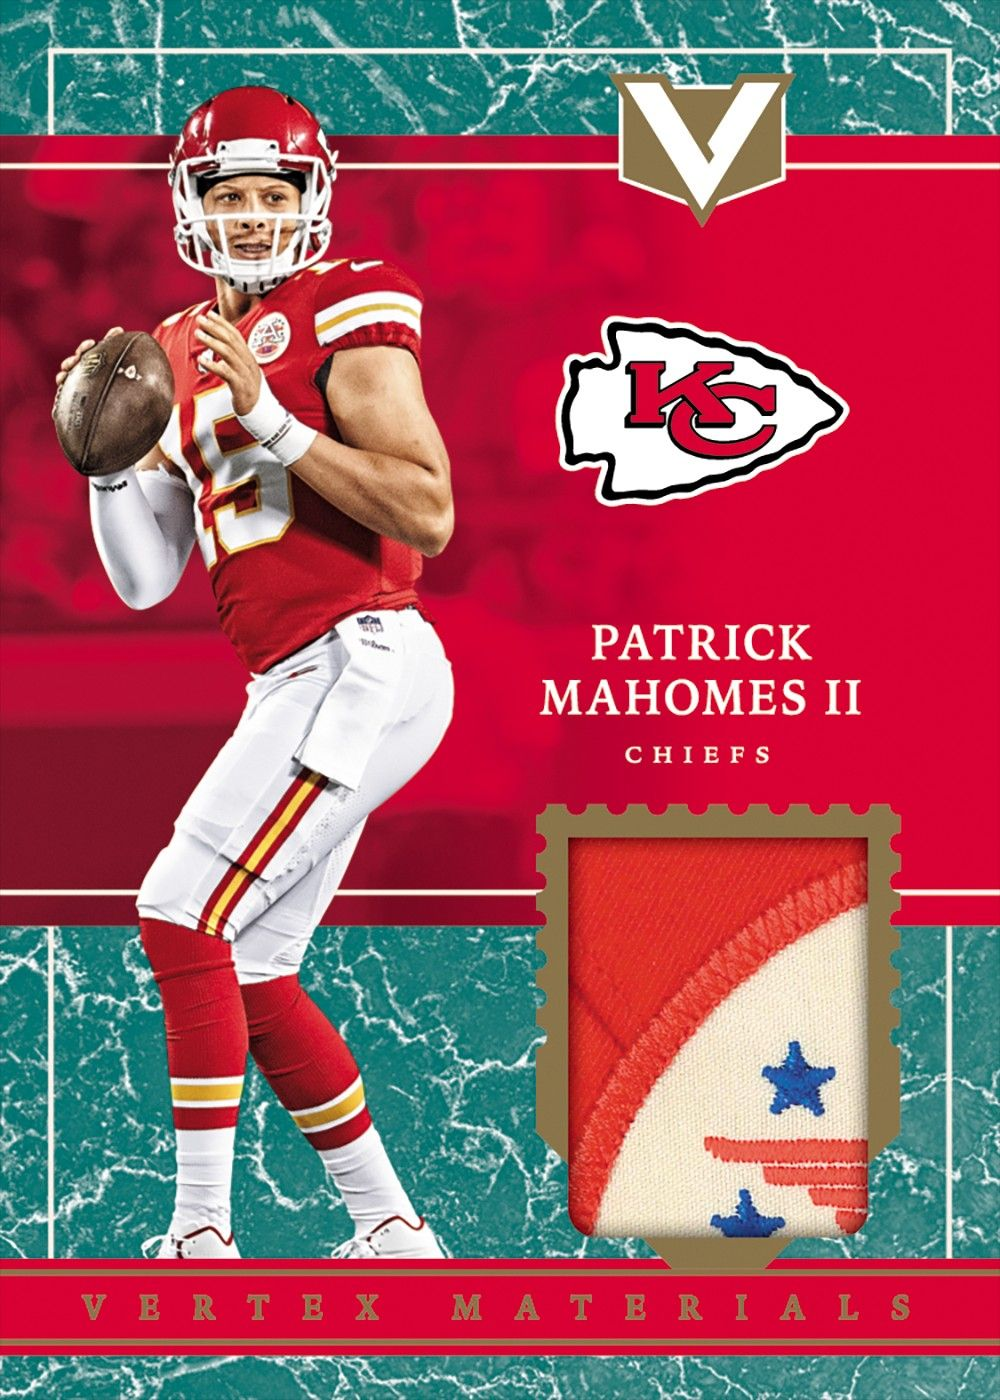 Pin by Durr Gruver on Panini Football Cards Nfl football